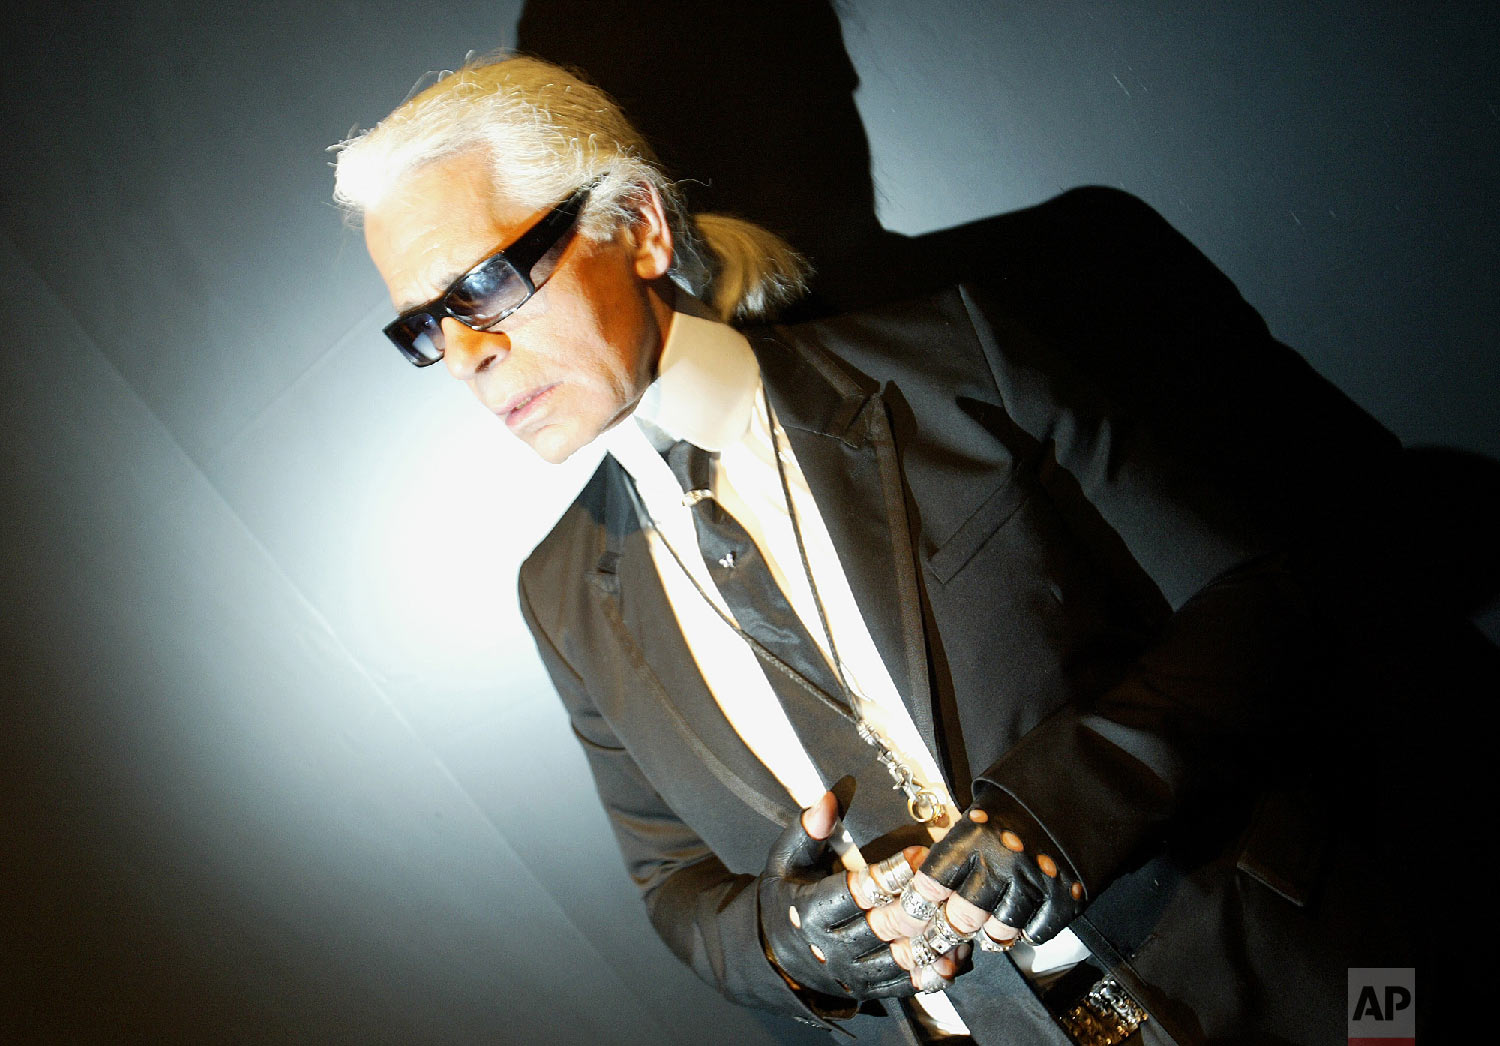 German Fashion designer Karl Lagerfeld is seen backstage during the presentation of Chanel's spring-summer 2005 haute couture fashion collection presented in Paris on Jan. 25, 2005. (AP Photo/Jerome Delay)